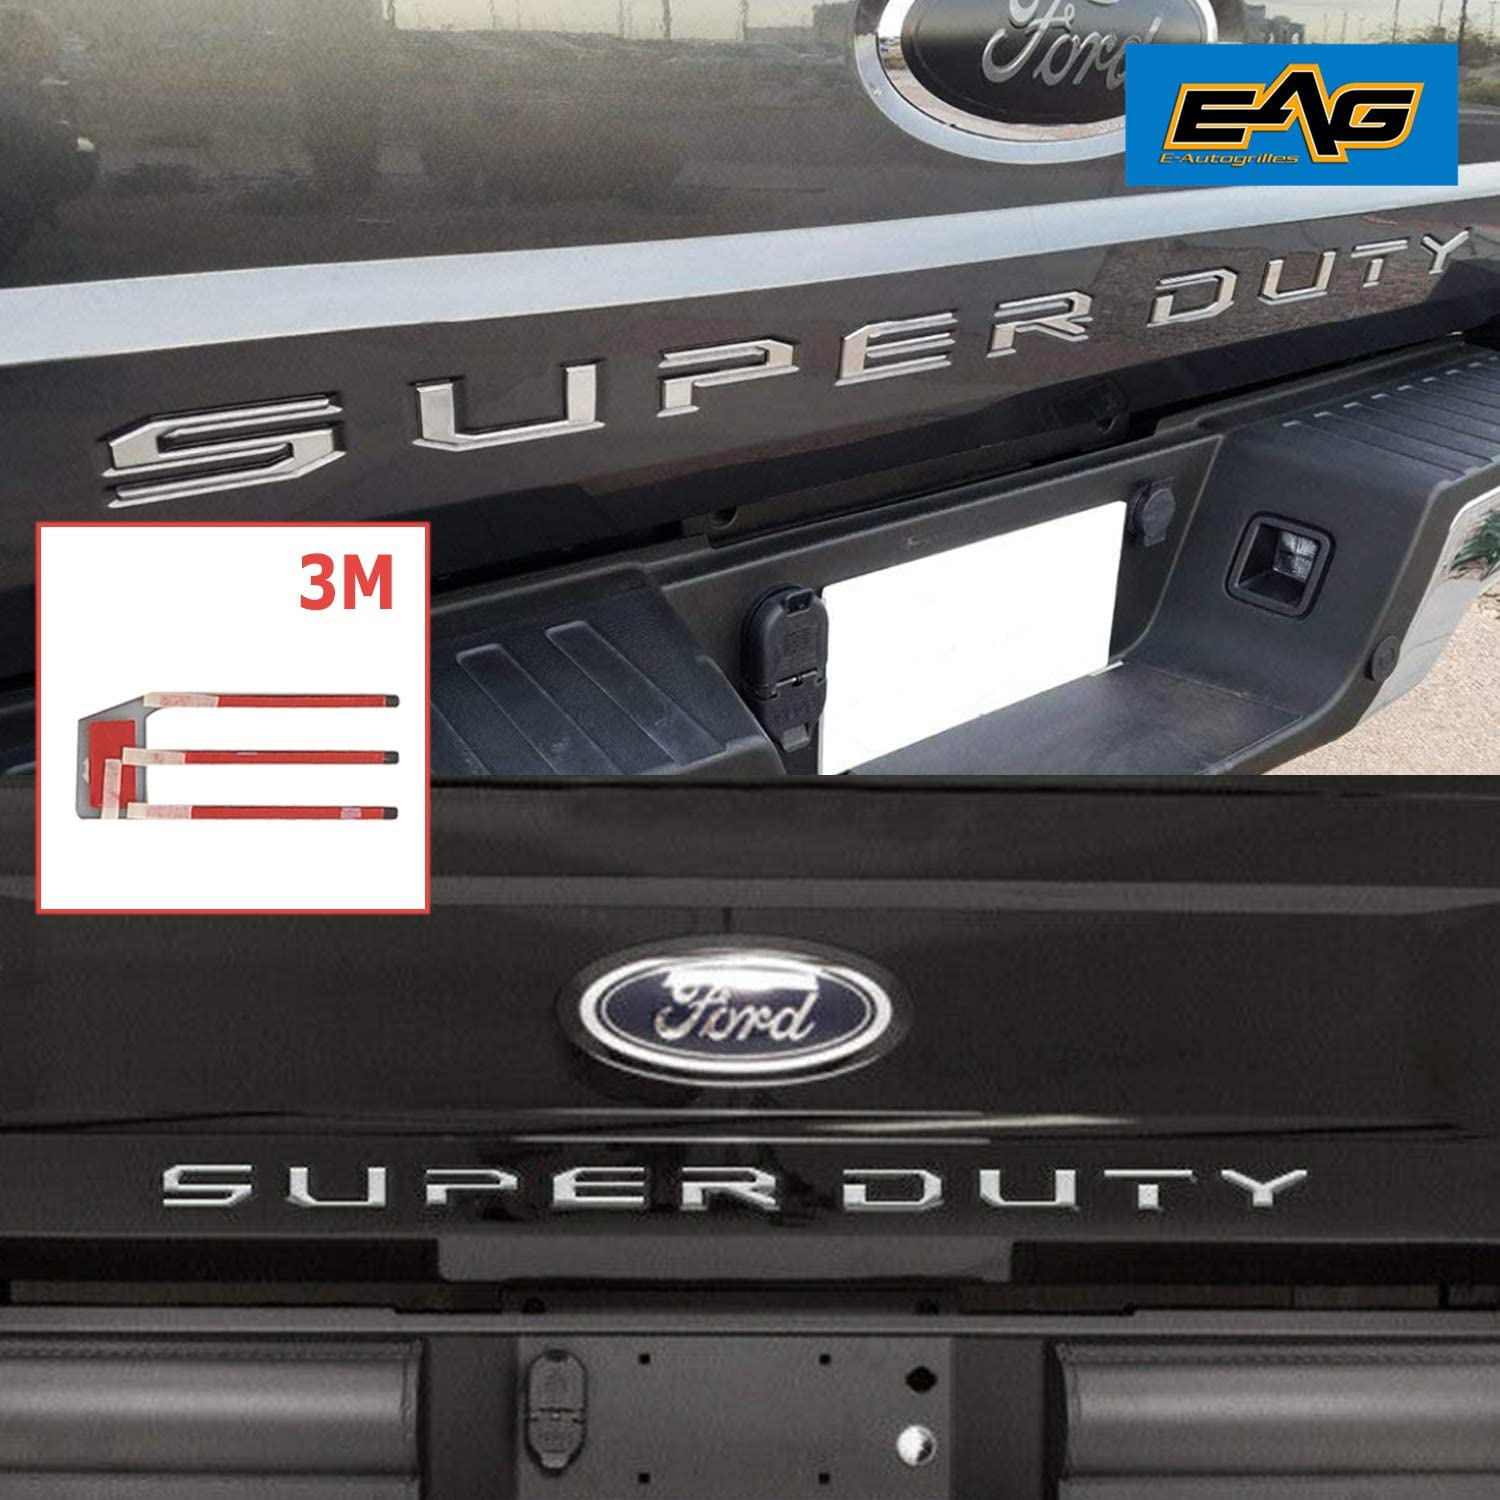 EAG Chrome Tailgate Insert Letters Fit for 2017-2019 Ford Super Duty F250 F350 F450